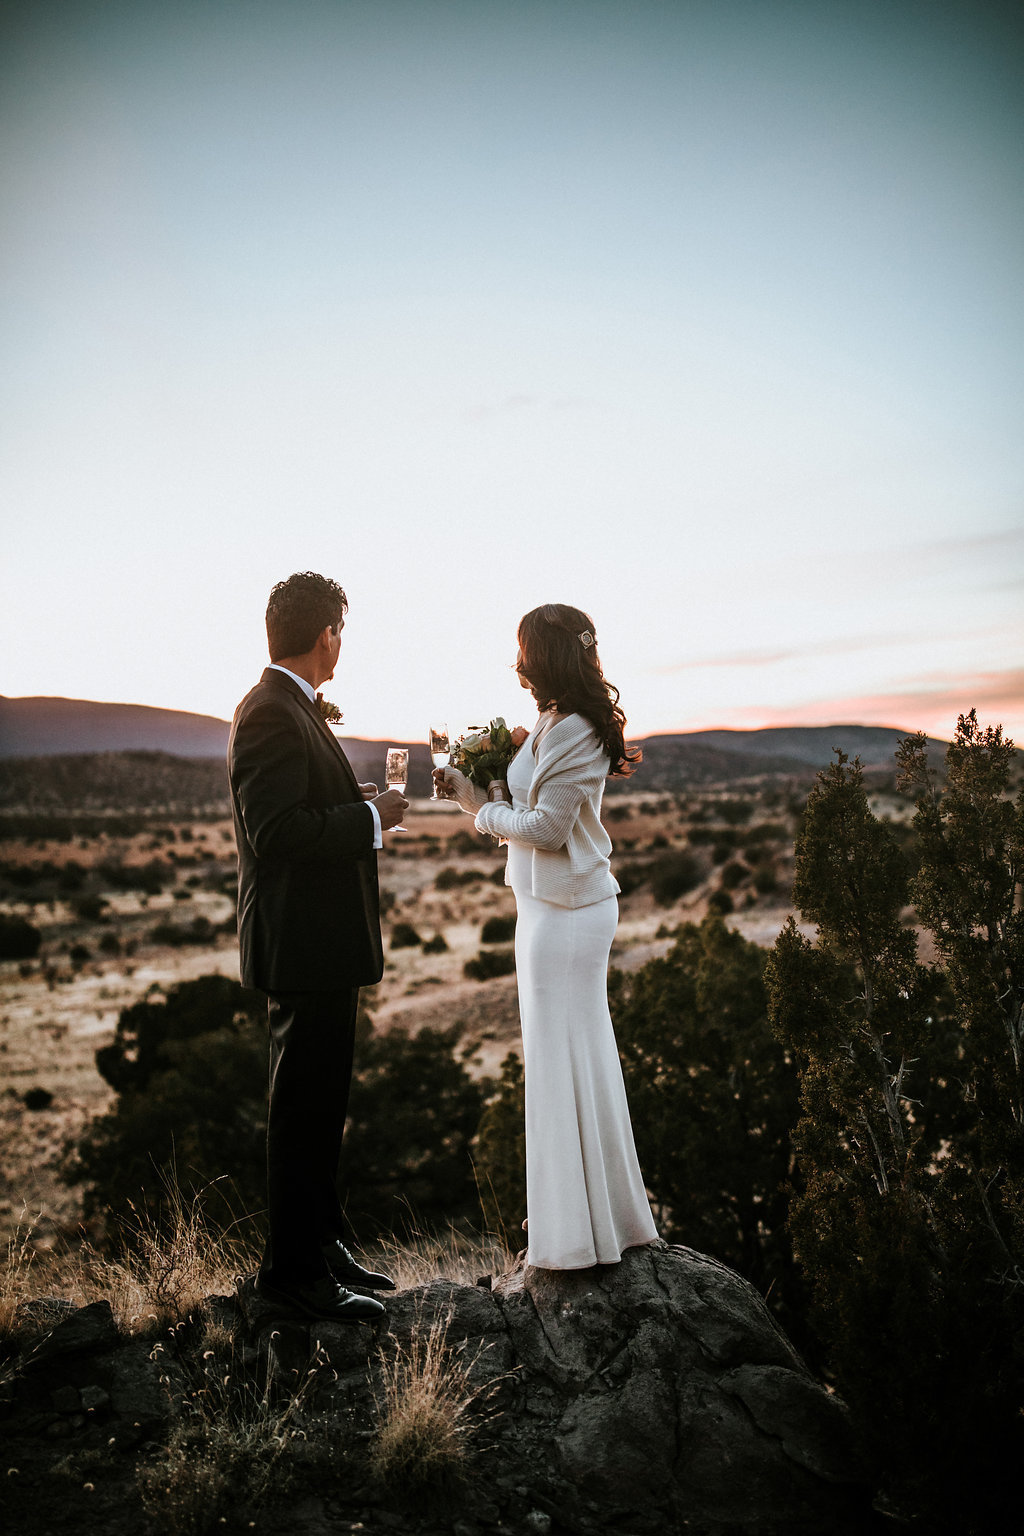 new-mexico-destination-engagement-wedding-photography-videography-adventure-132